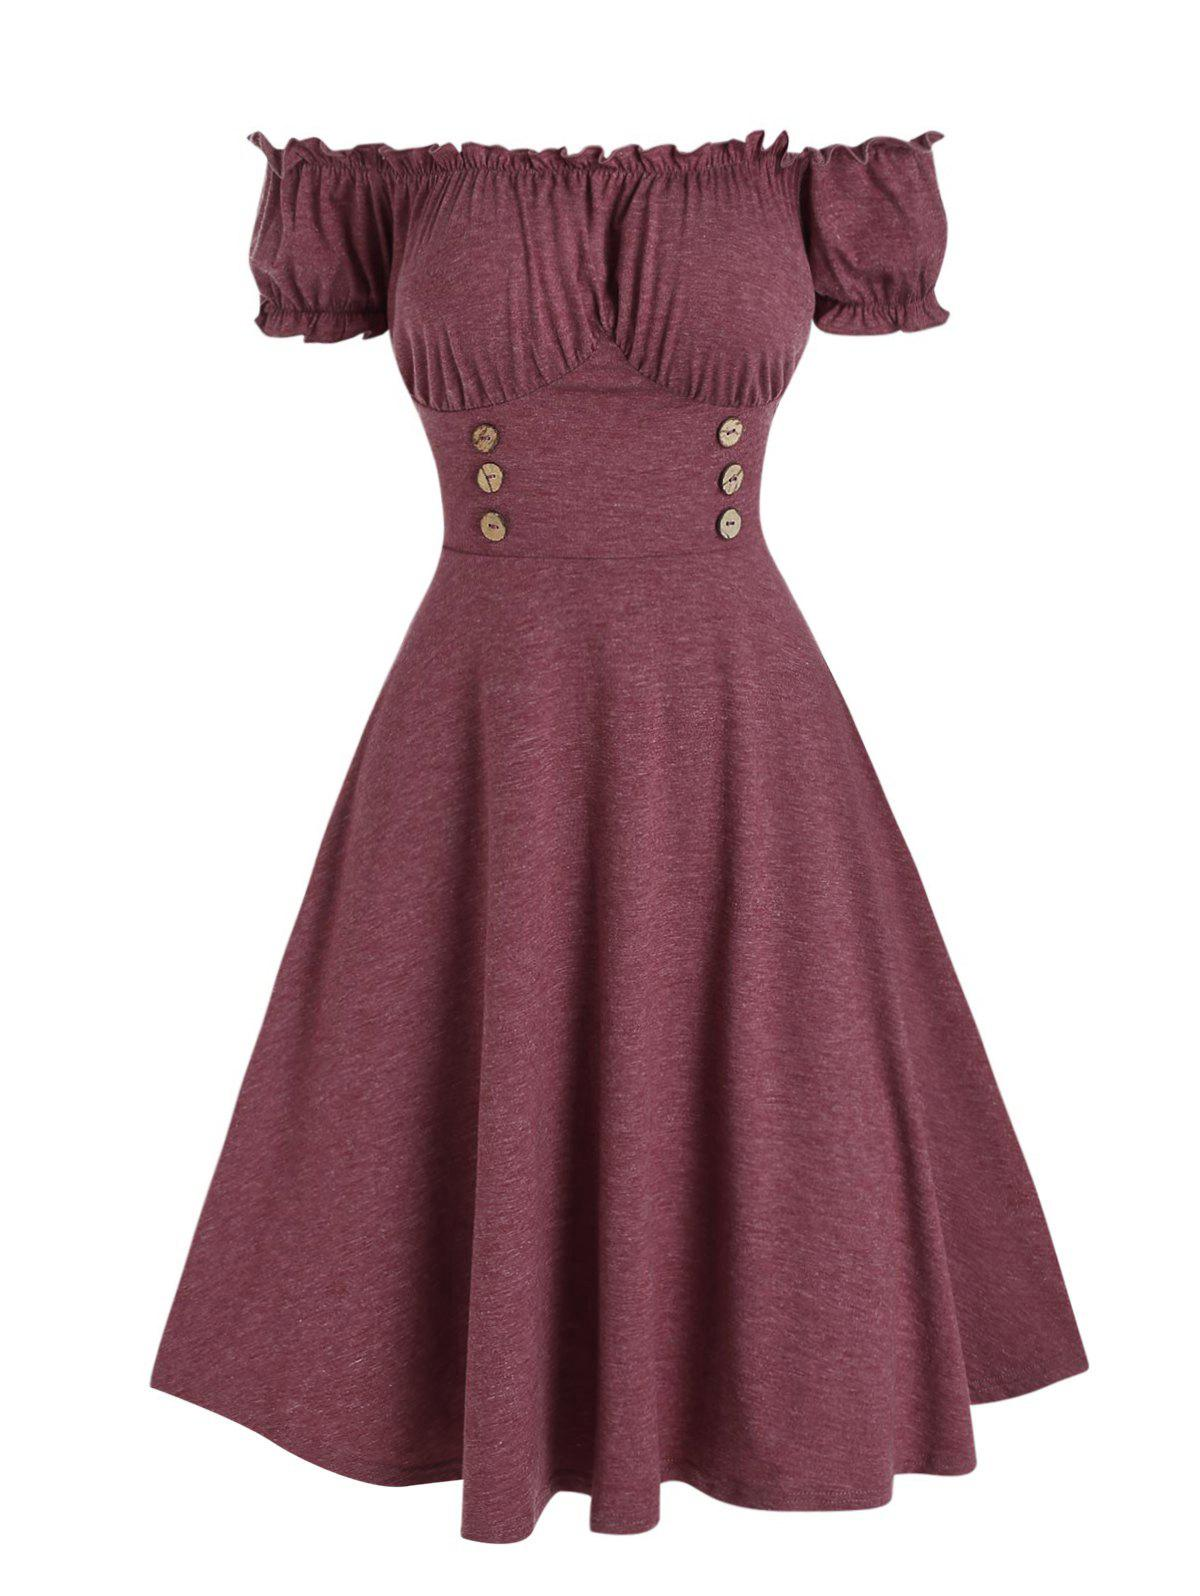 New Ruffled Off The Shoulder Dress